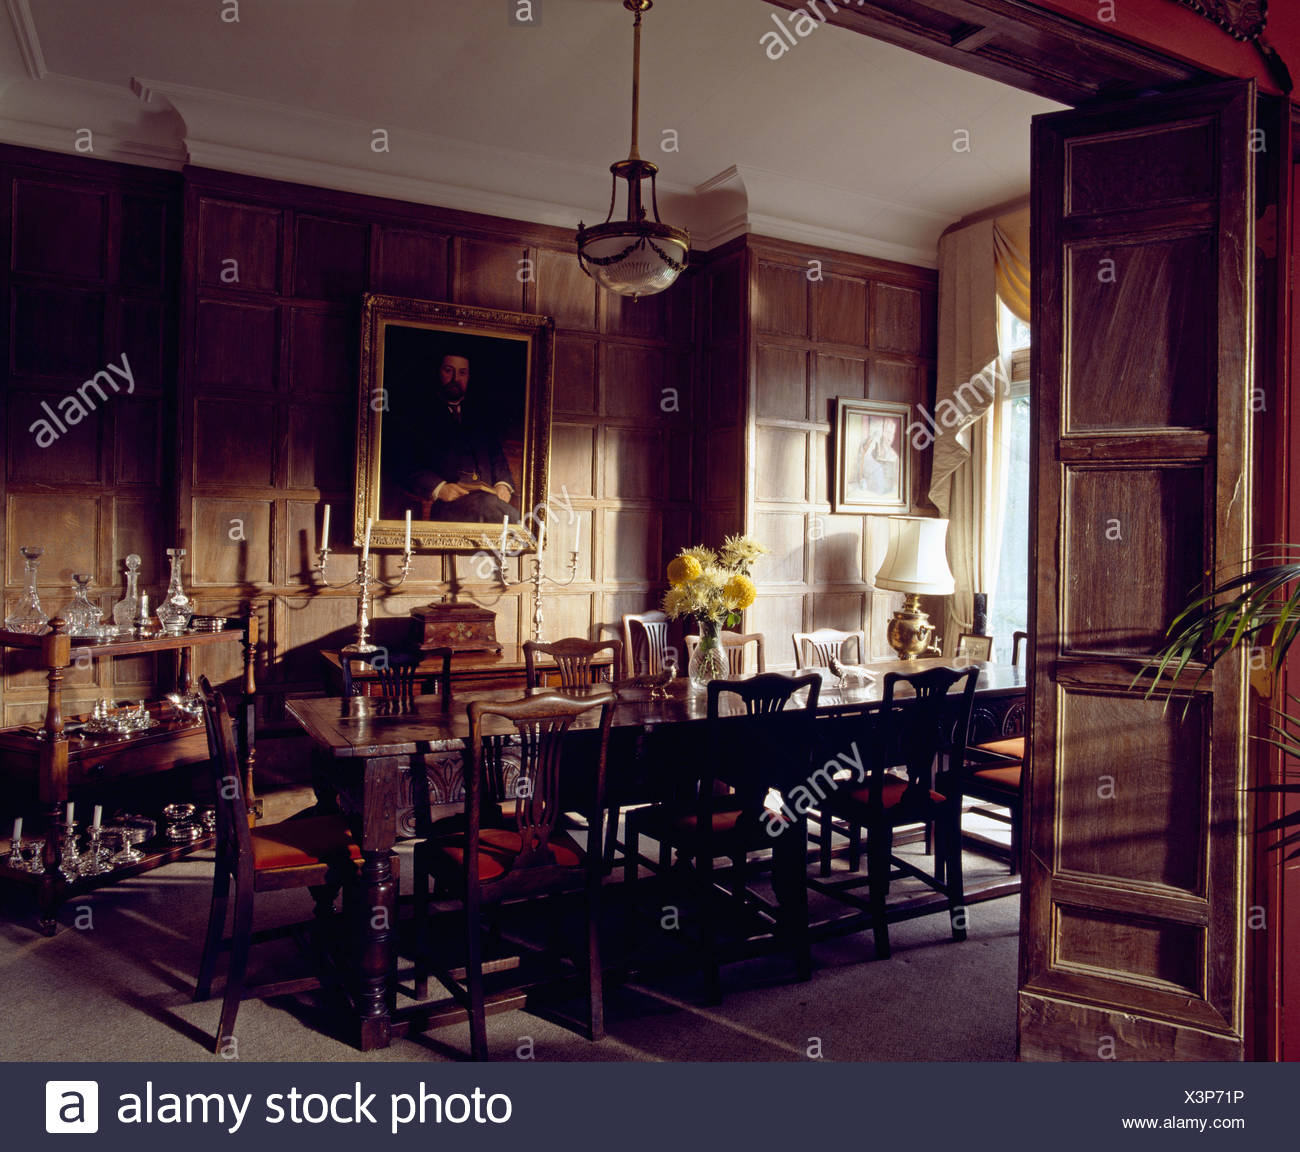 Antique Furniture In Country House Dining Room With Tudor Panelling On The  Walls